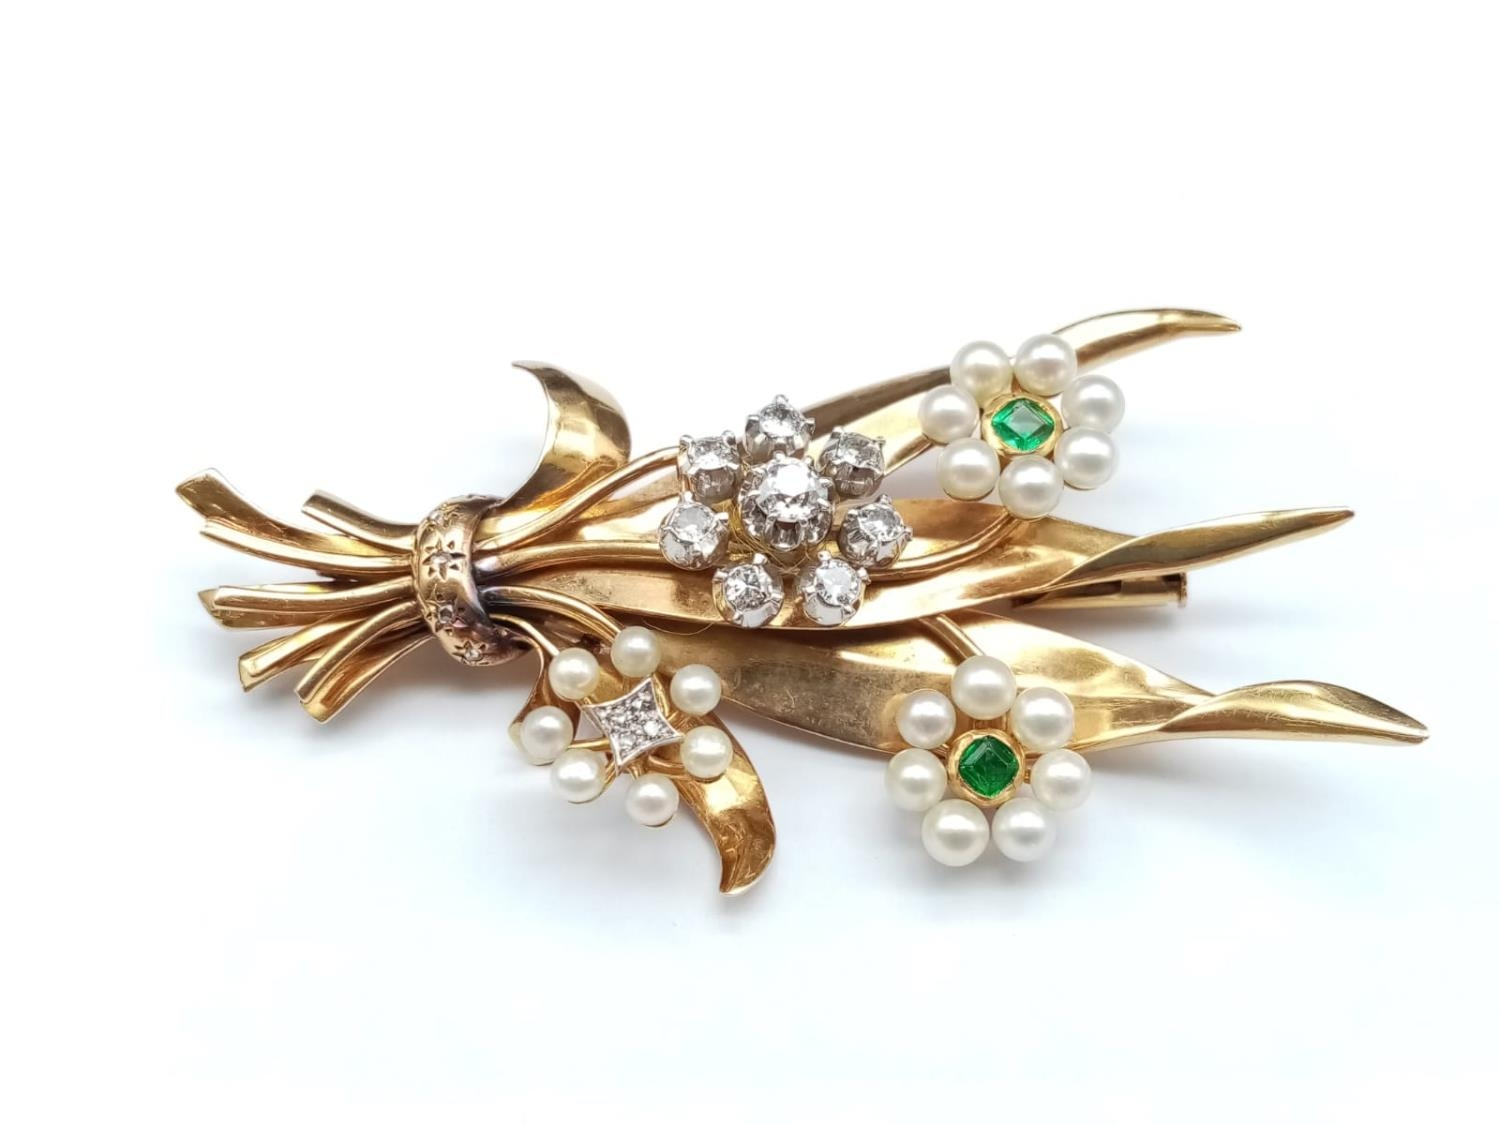 AN INTERESTING 18K GOLD BROOCH FASHIONED IN A FLEUR DE LYS STYLE WITH DIAMONDS, EMERALDS AND SEED